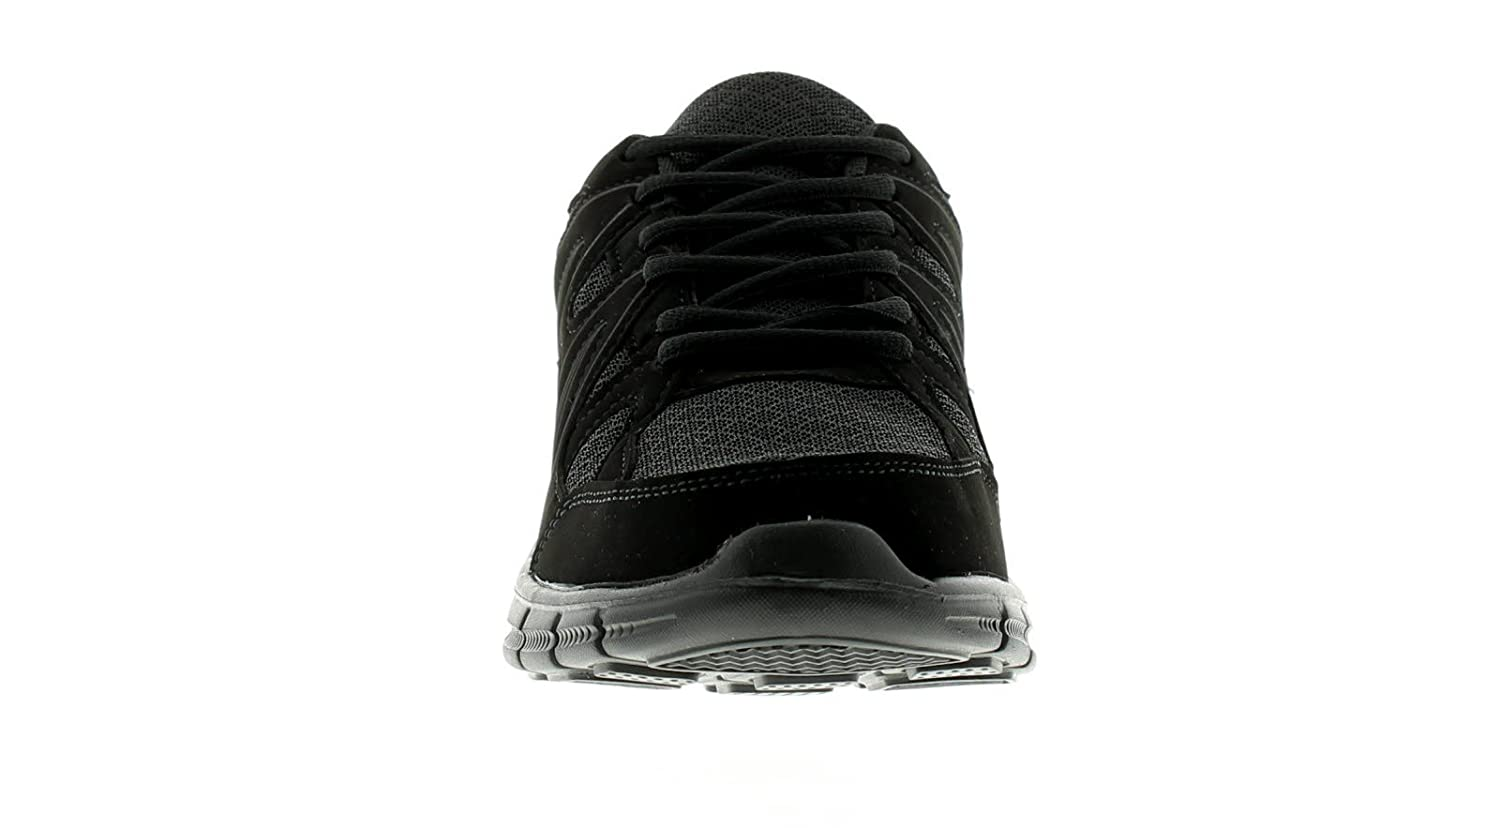 Focus New Mens/Gents Black Lace UPS Lightweight Trainers - Black - UK Sizes  7-11: Amazon.co.uk: Shoes & Bags